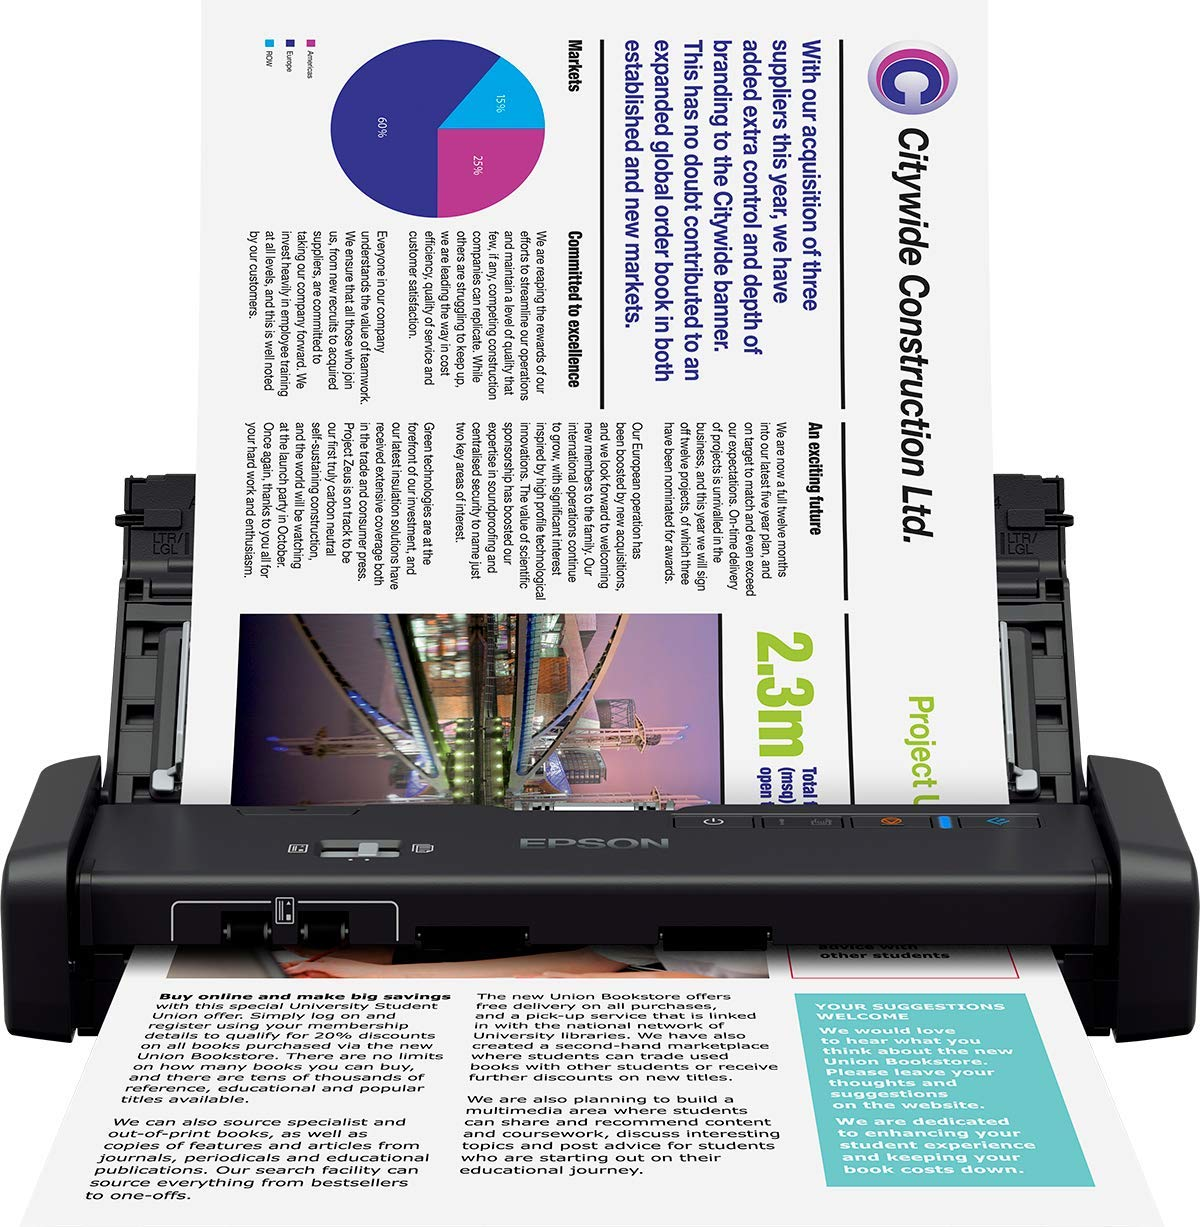 datenblatt epson scanner 310 photo serie perfection